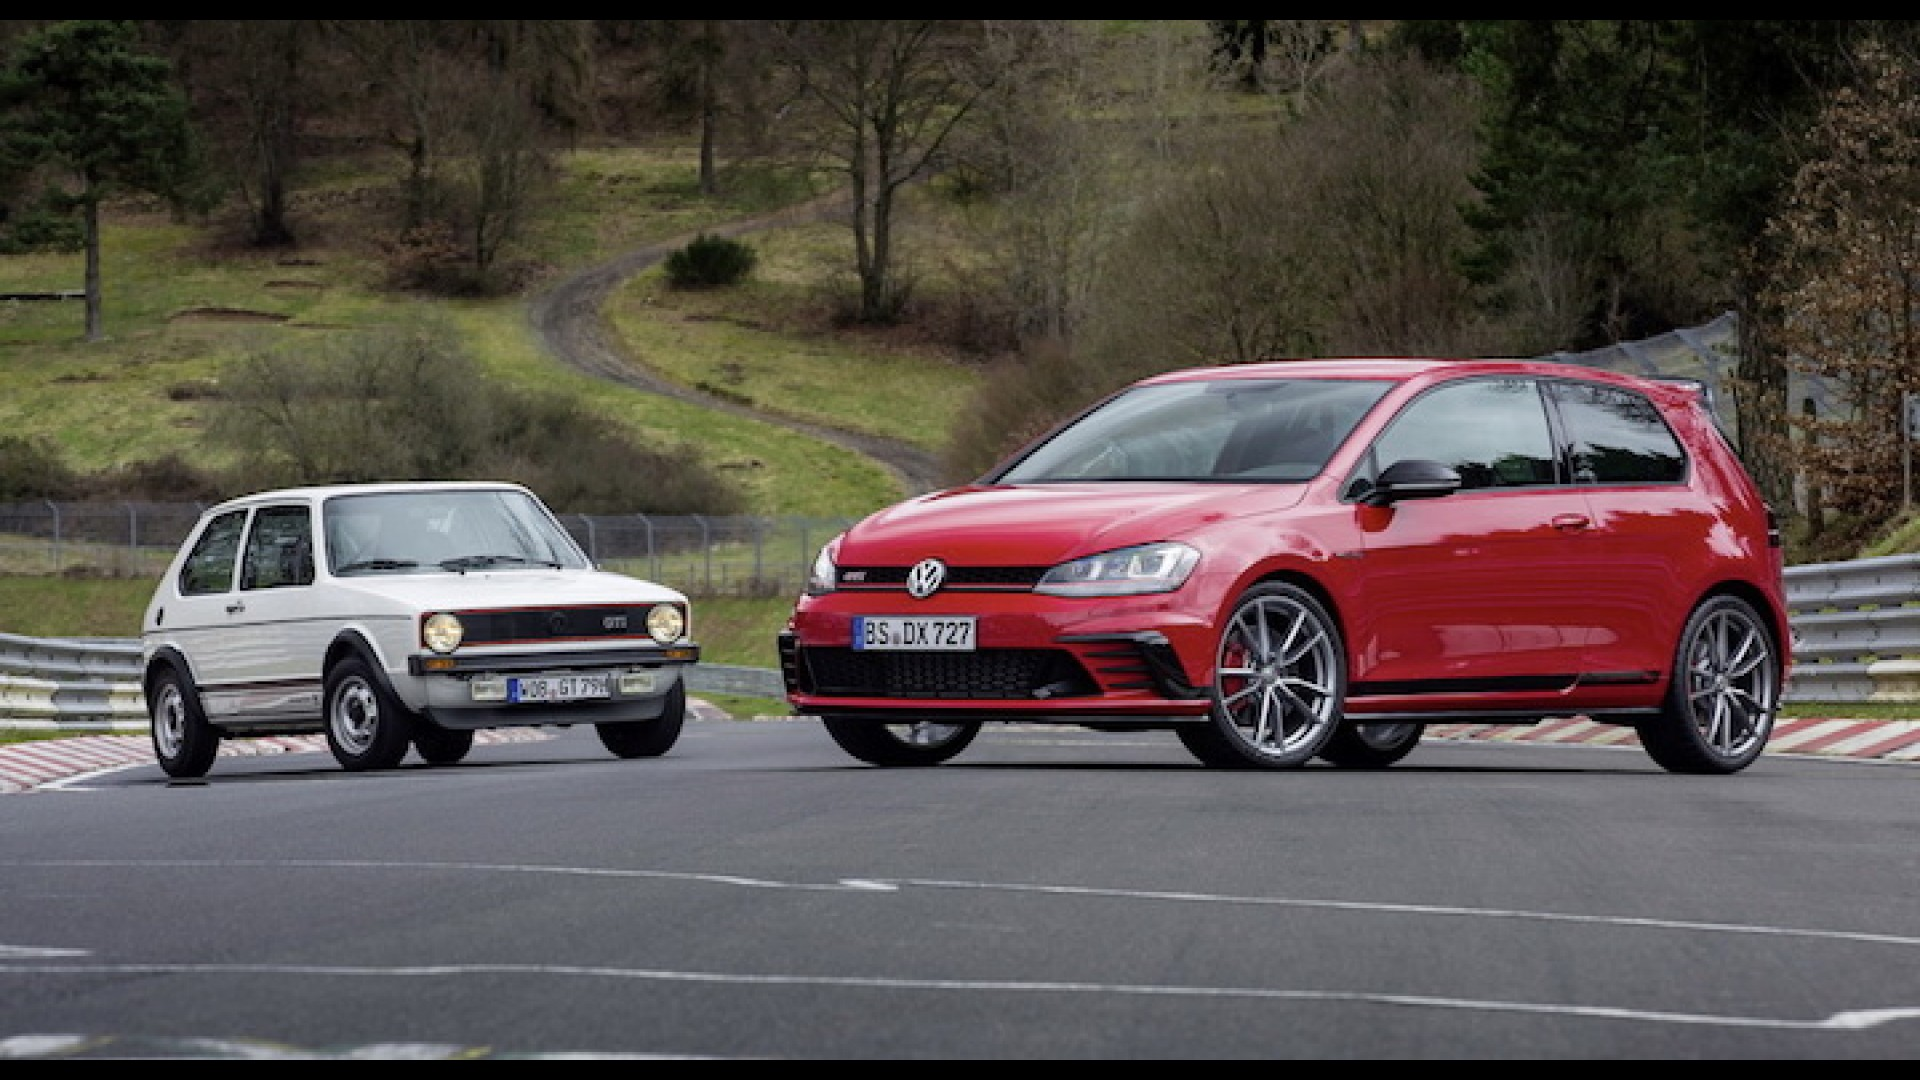 2017 Volkswagen Golf Gti Clubsport S Already Sold Out In U K